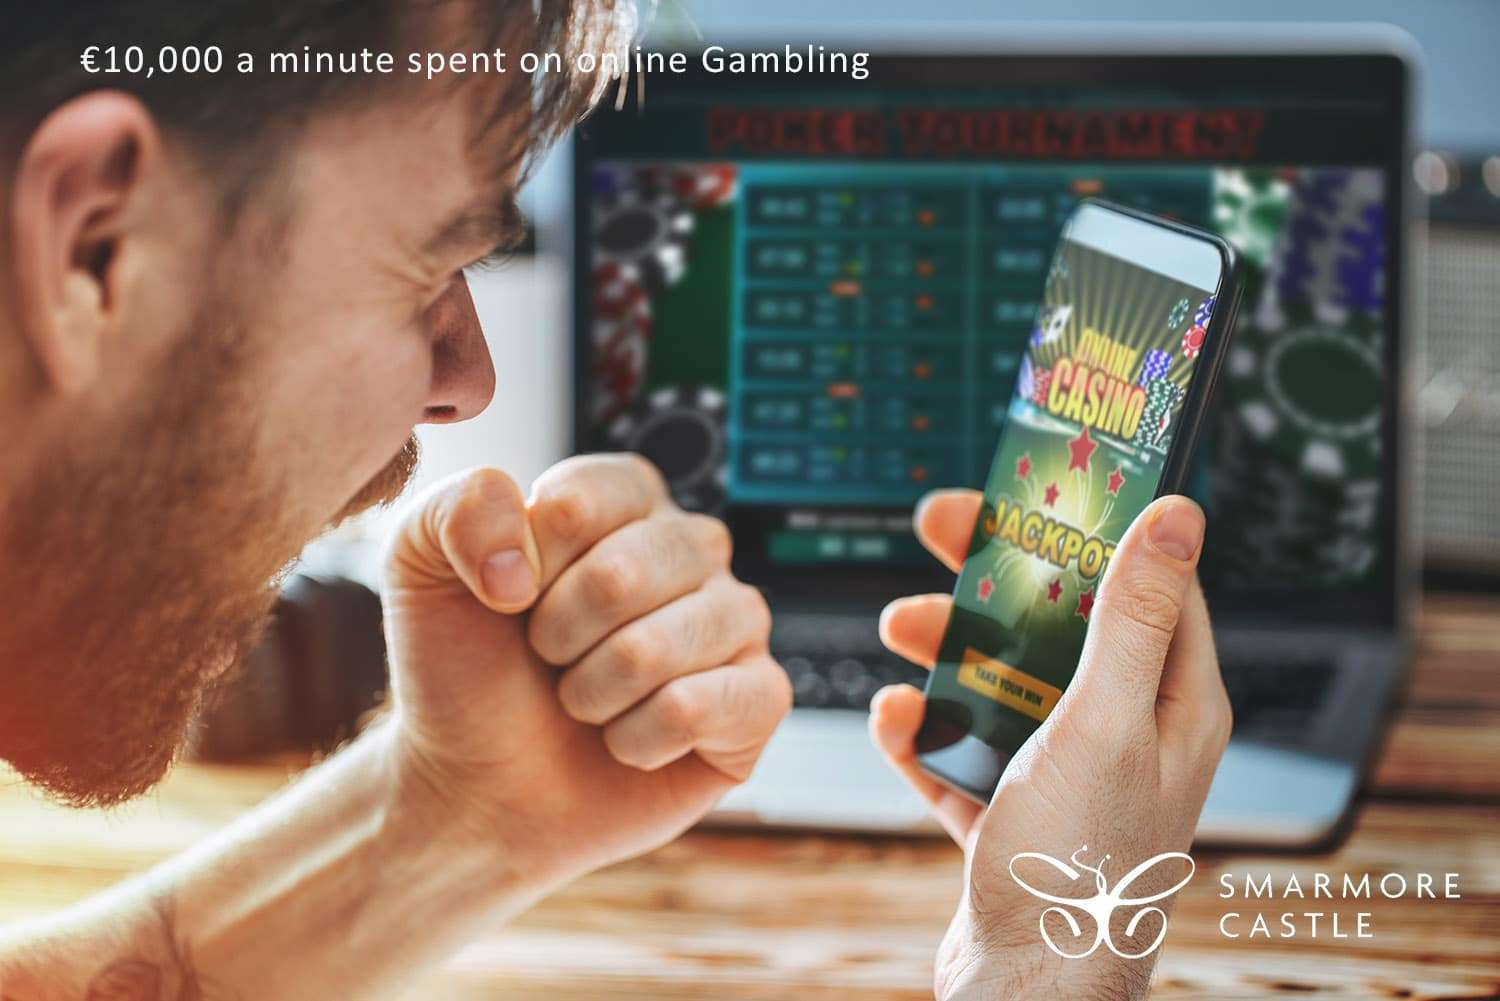 €10,000 a minute spent on online Gambling